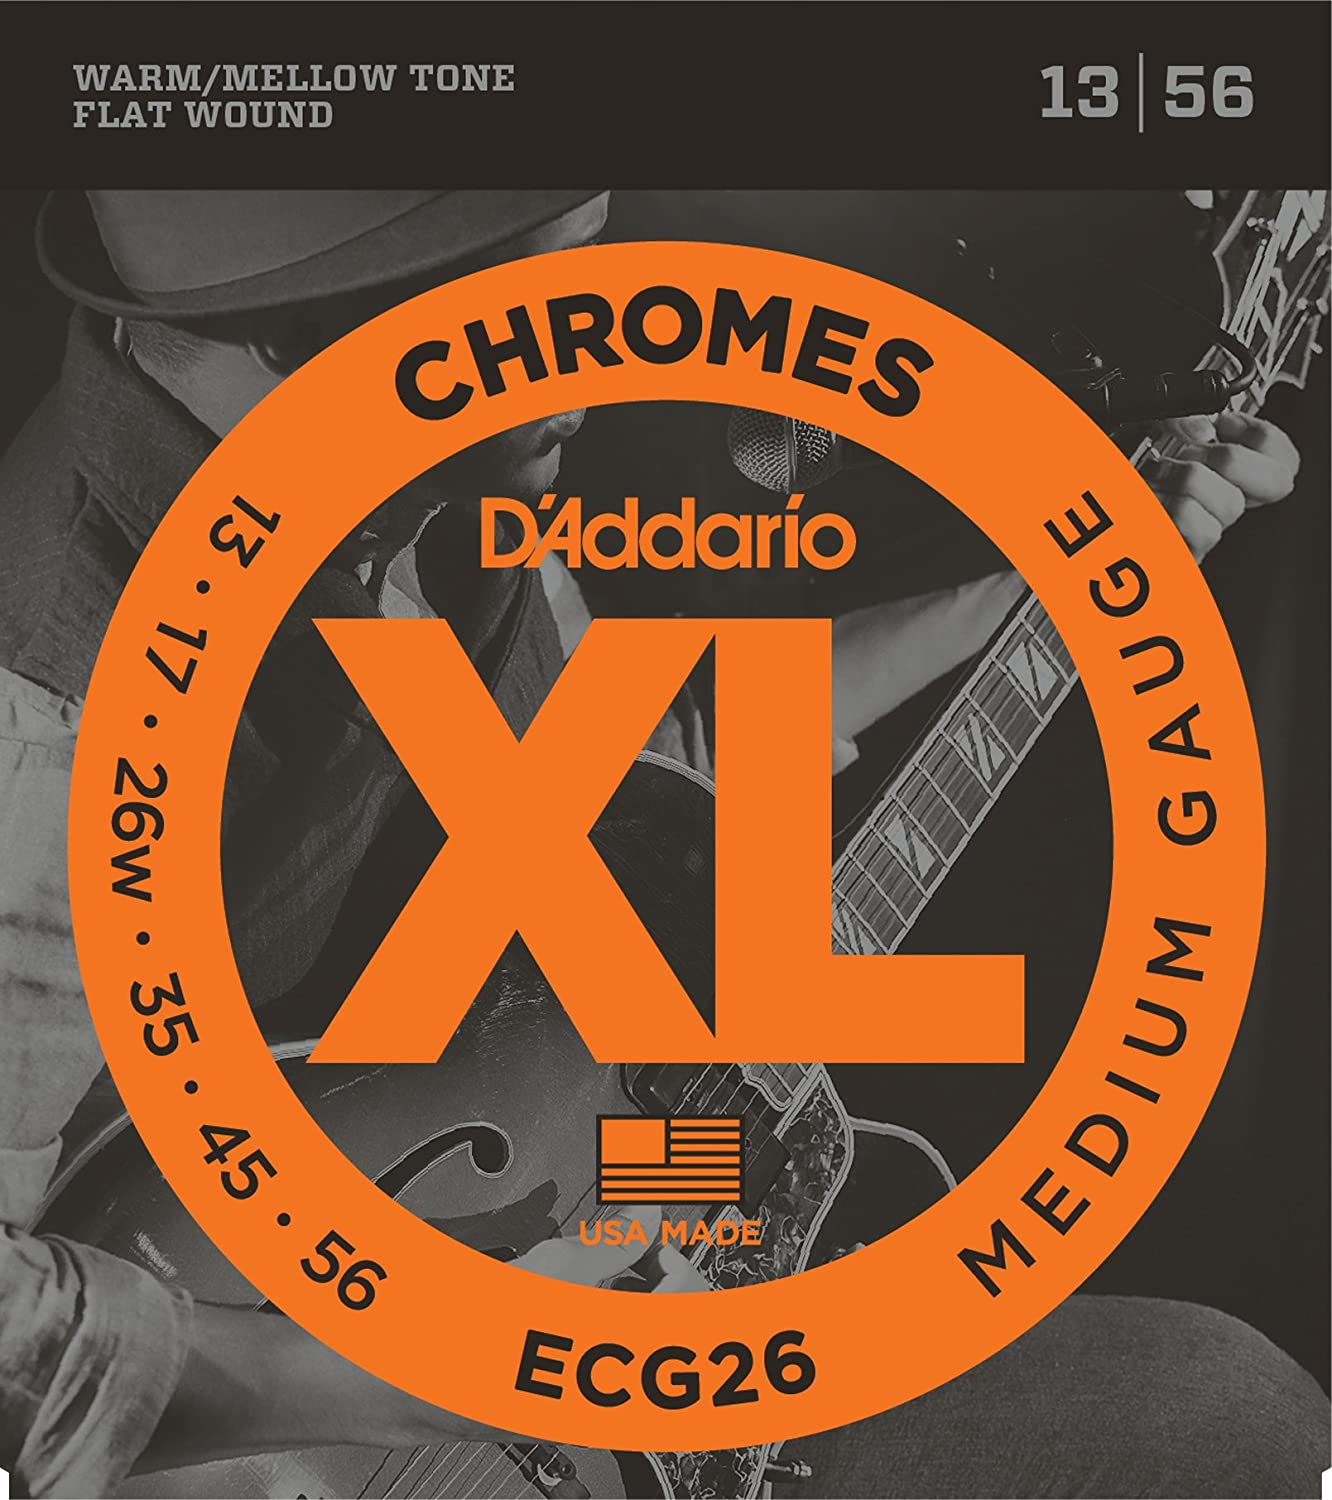 D'Addario ECG25 Chromes Flat Wound Electric Guitar Strings, Light, 12-52 D'Addario